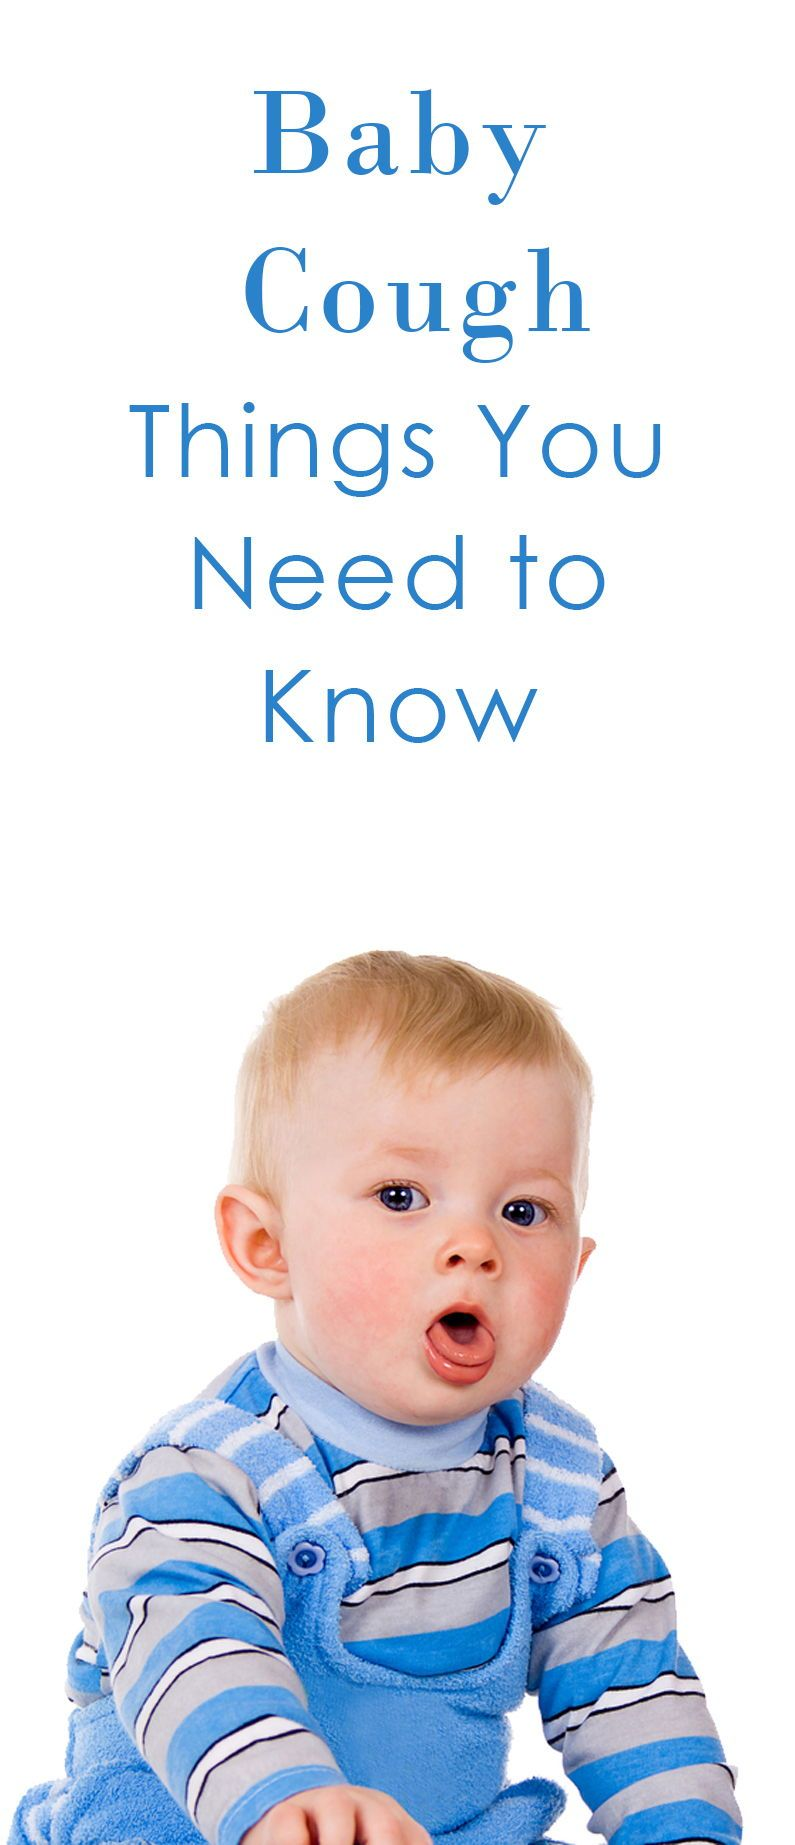 Baby Cough 9 Types Of Cough And What Causes Baby Cough Baby Cough Kids Health Sick Baby